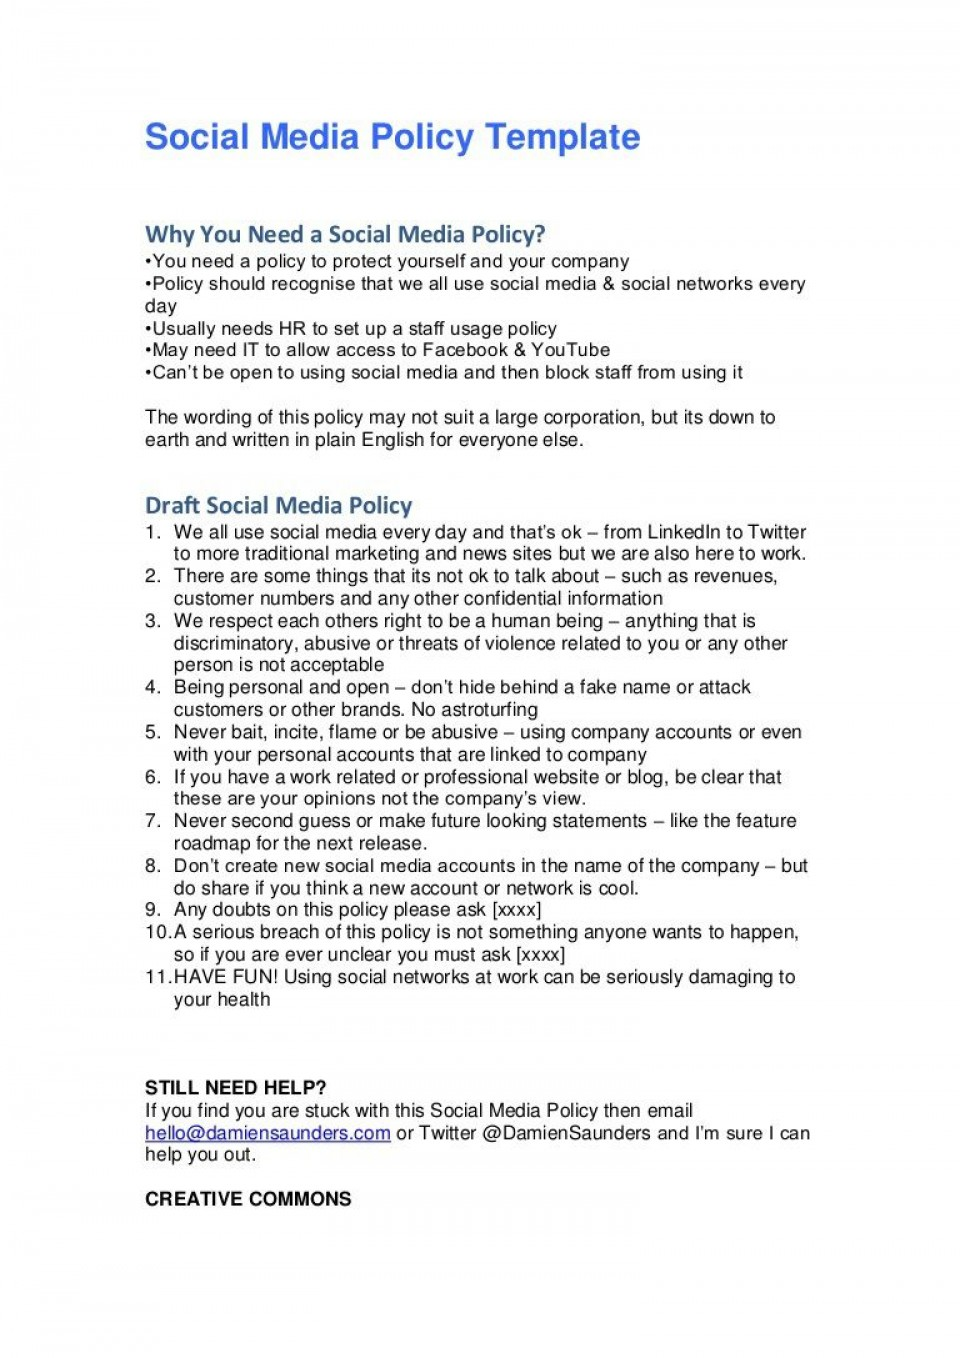 008 Simple Social Media Policie Template Example  Policy Australia For Small Busines960